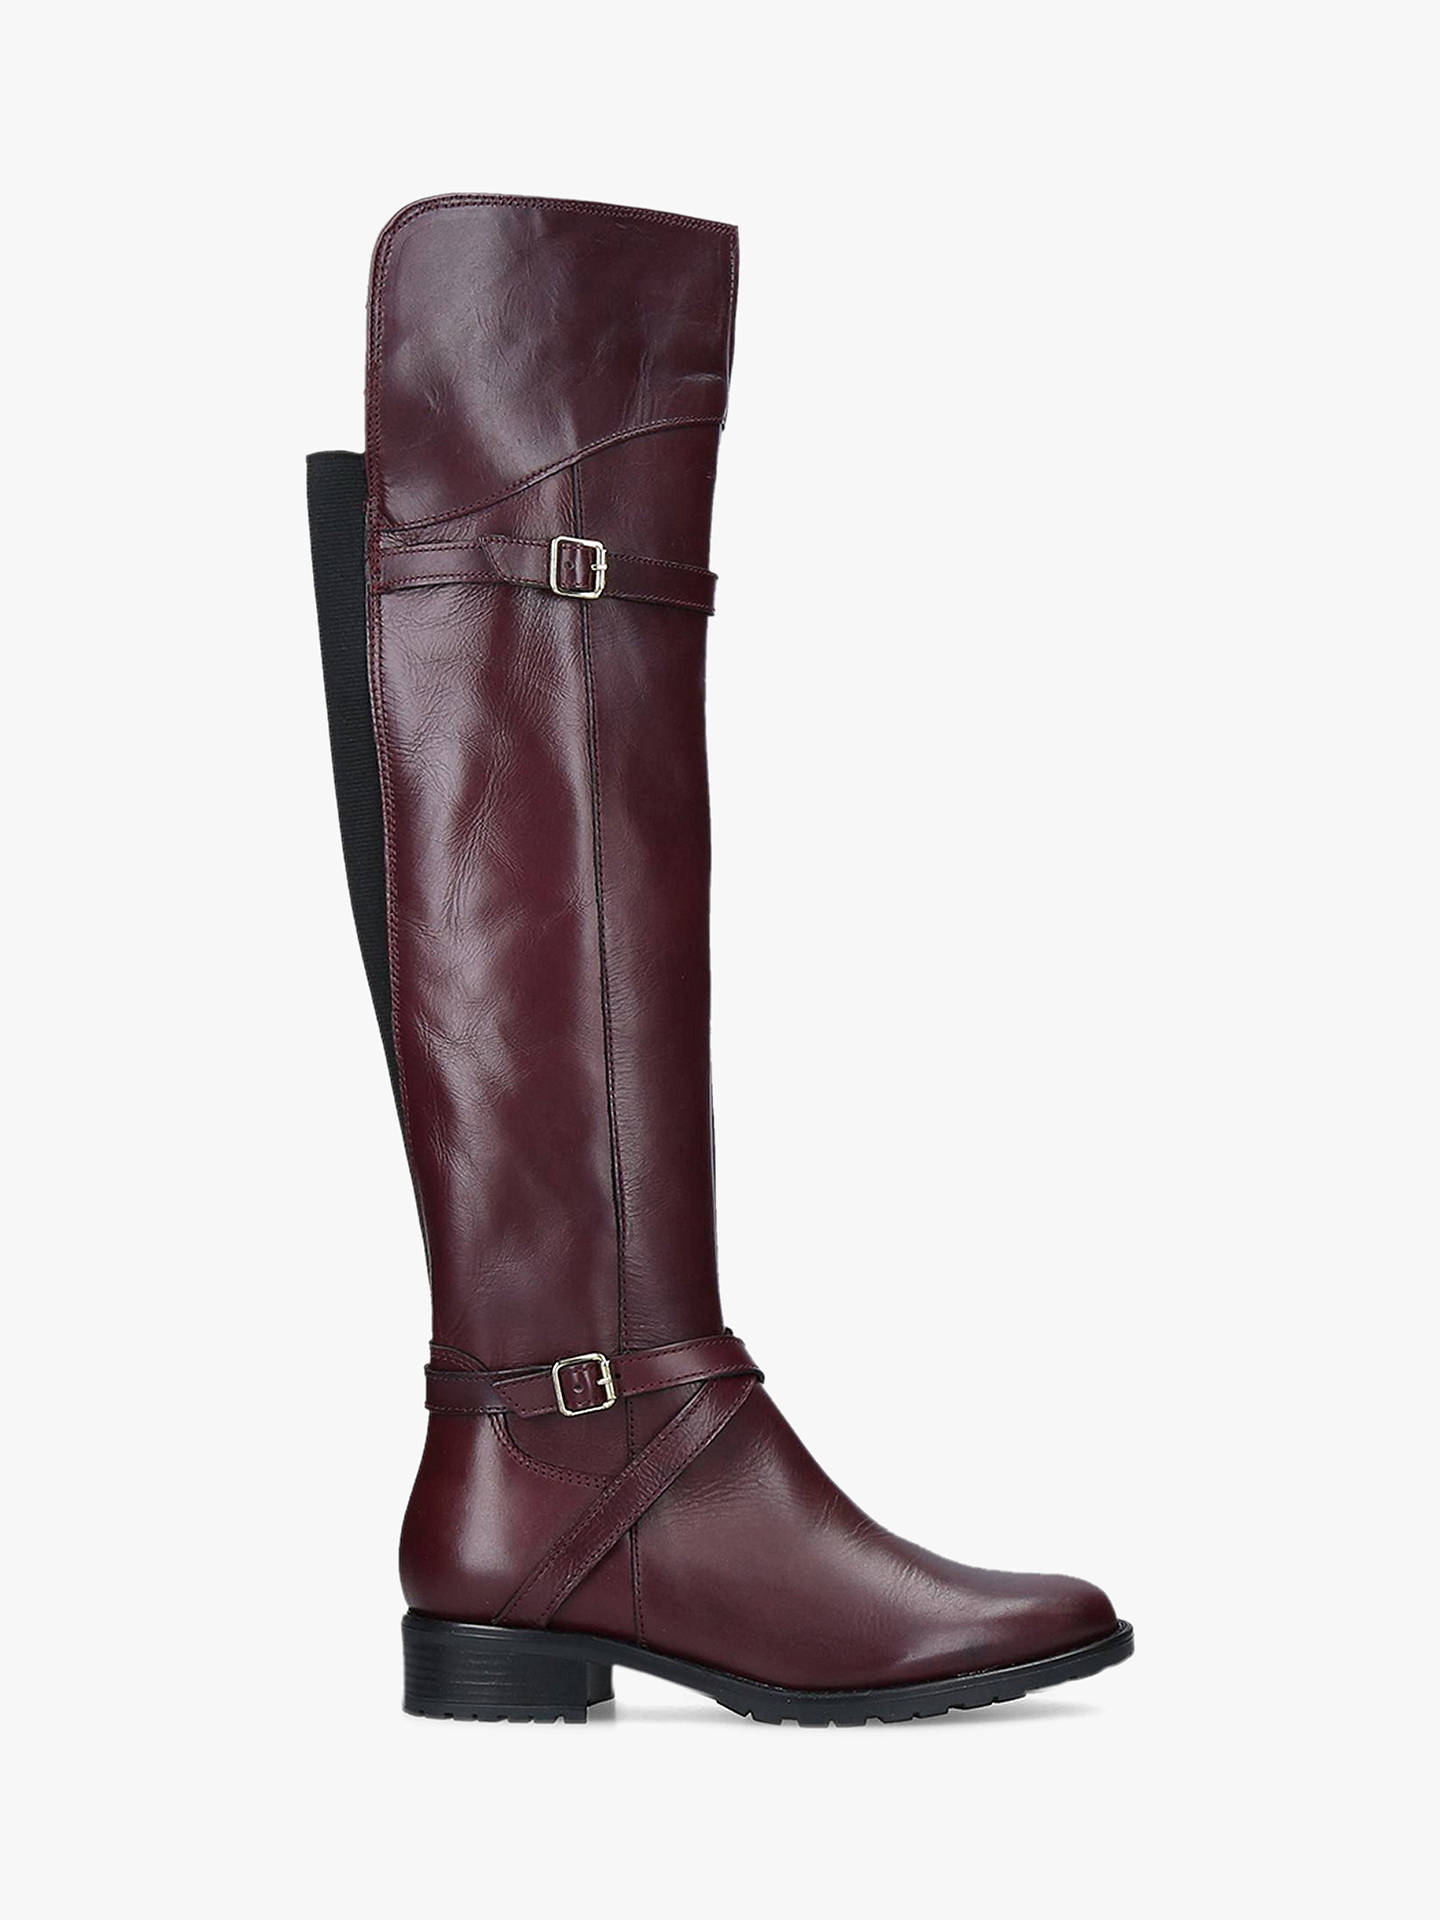 Buy Carvela Comfort Viv Knee High Boots, Red Leather, 3 Online at johnlewis.com